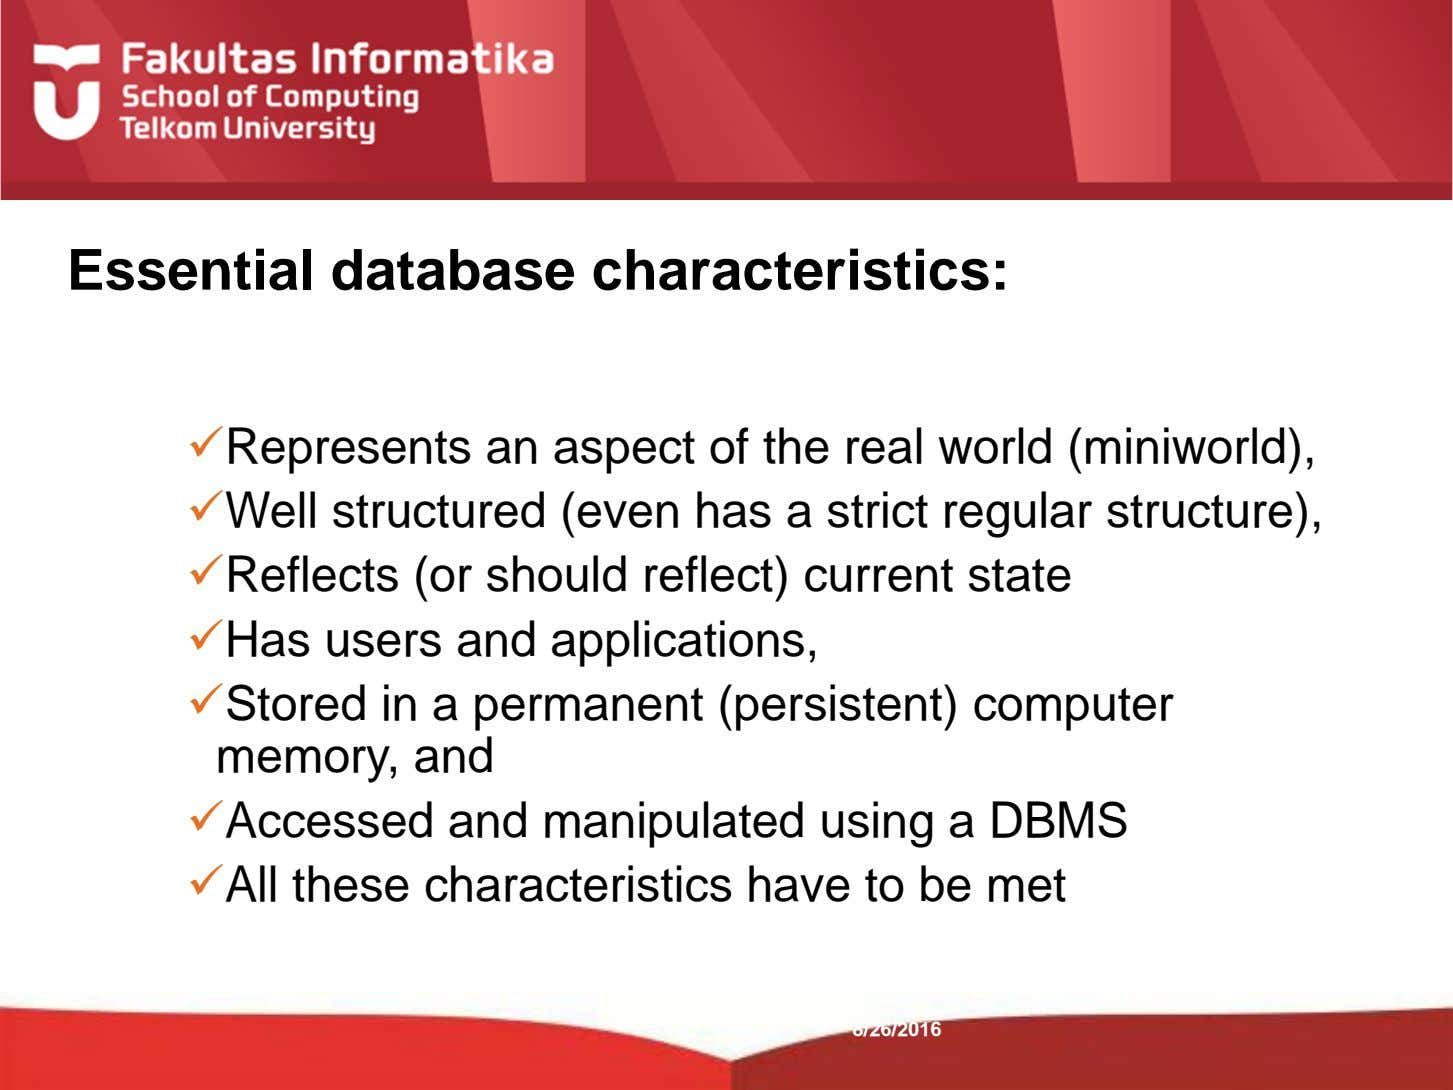 Essential database characteristics: Represents an aspect of the real world (miniworld), Well structured (even has